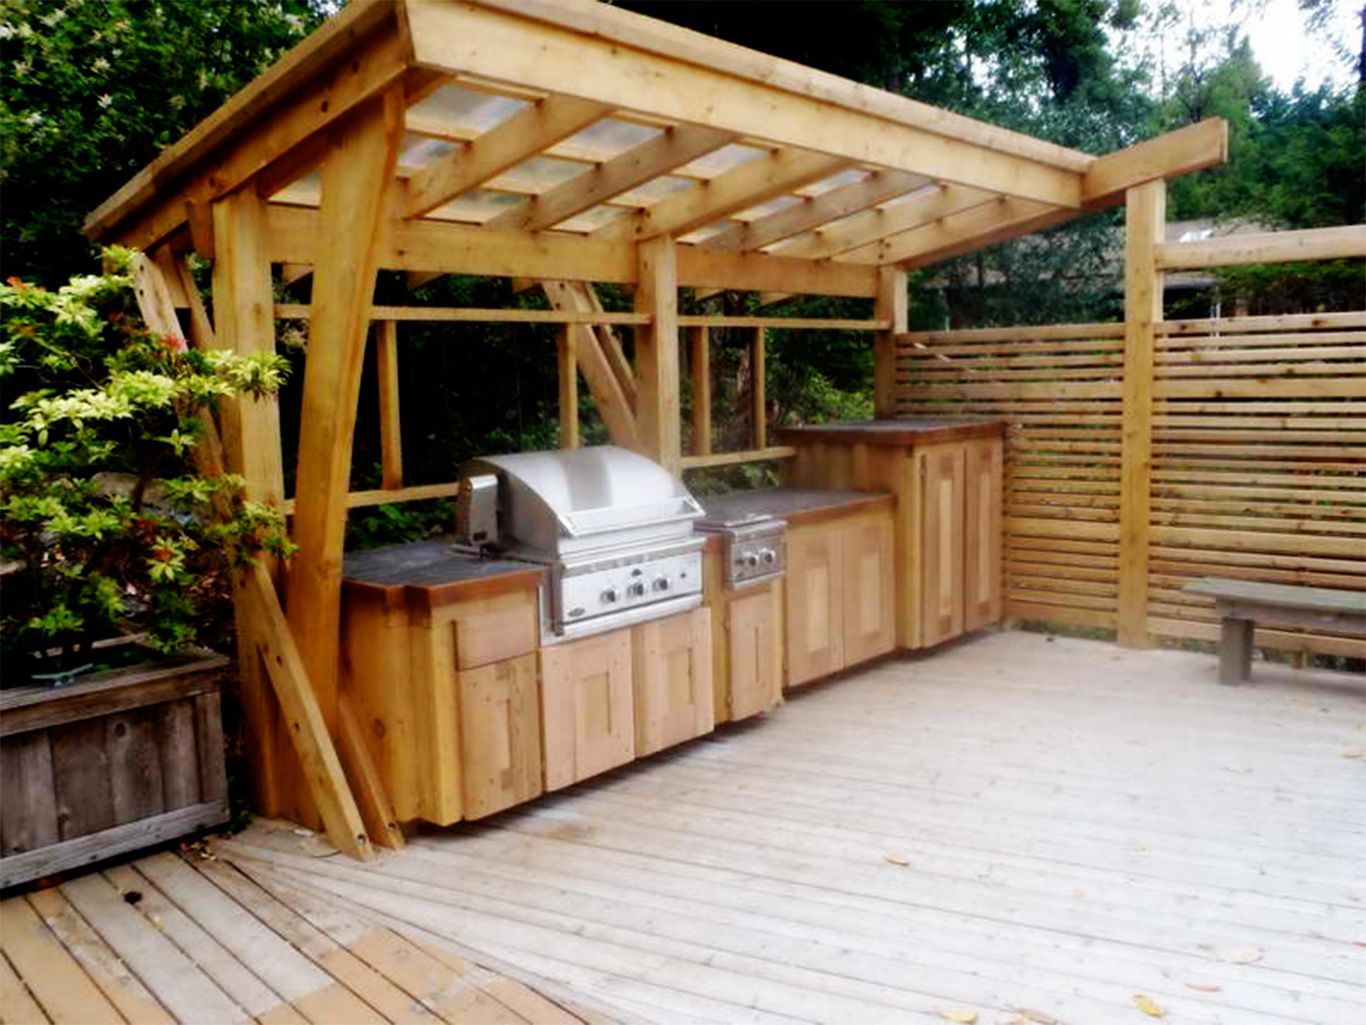 Ideas Outdoor Kitchen Ideas Rustic Outdoor Kitchen Designs Solid Wooden Pergola Solid Varnished Kitchen Island With Wood Top Stainless Steel Gas Stove Small